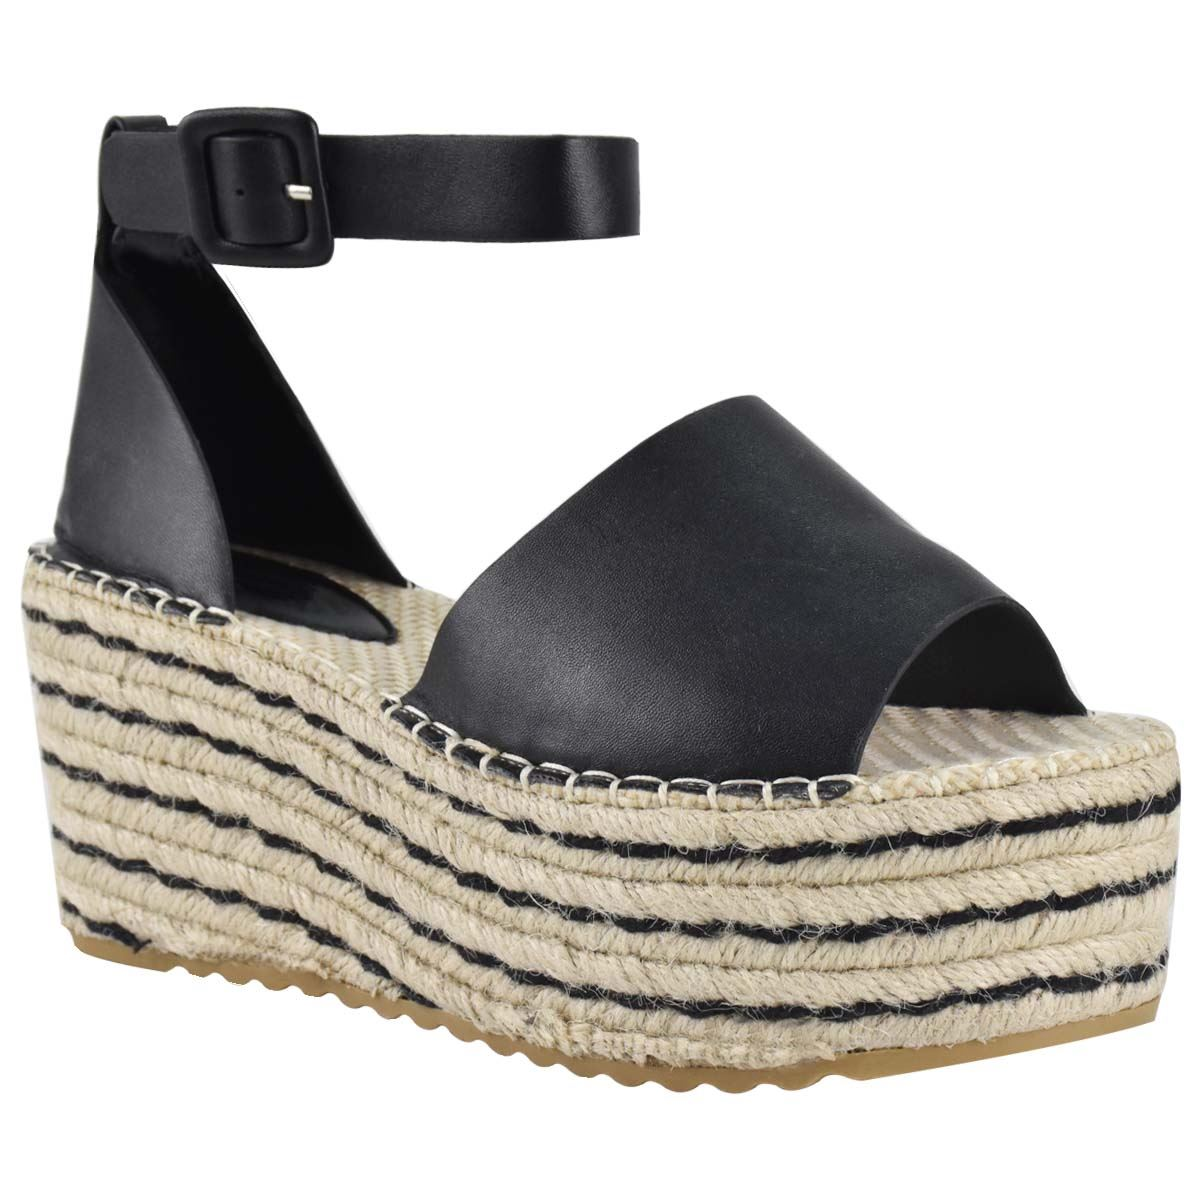 Womens-Flatform-Platform-High-Wedge-Black-Tan-Faux-Leather-Summer-Sandals-Size thumbnail 3